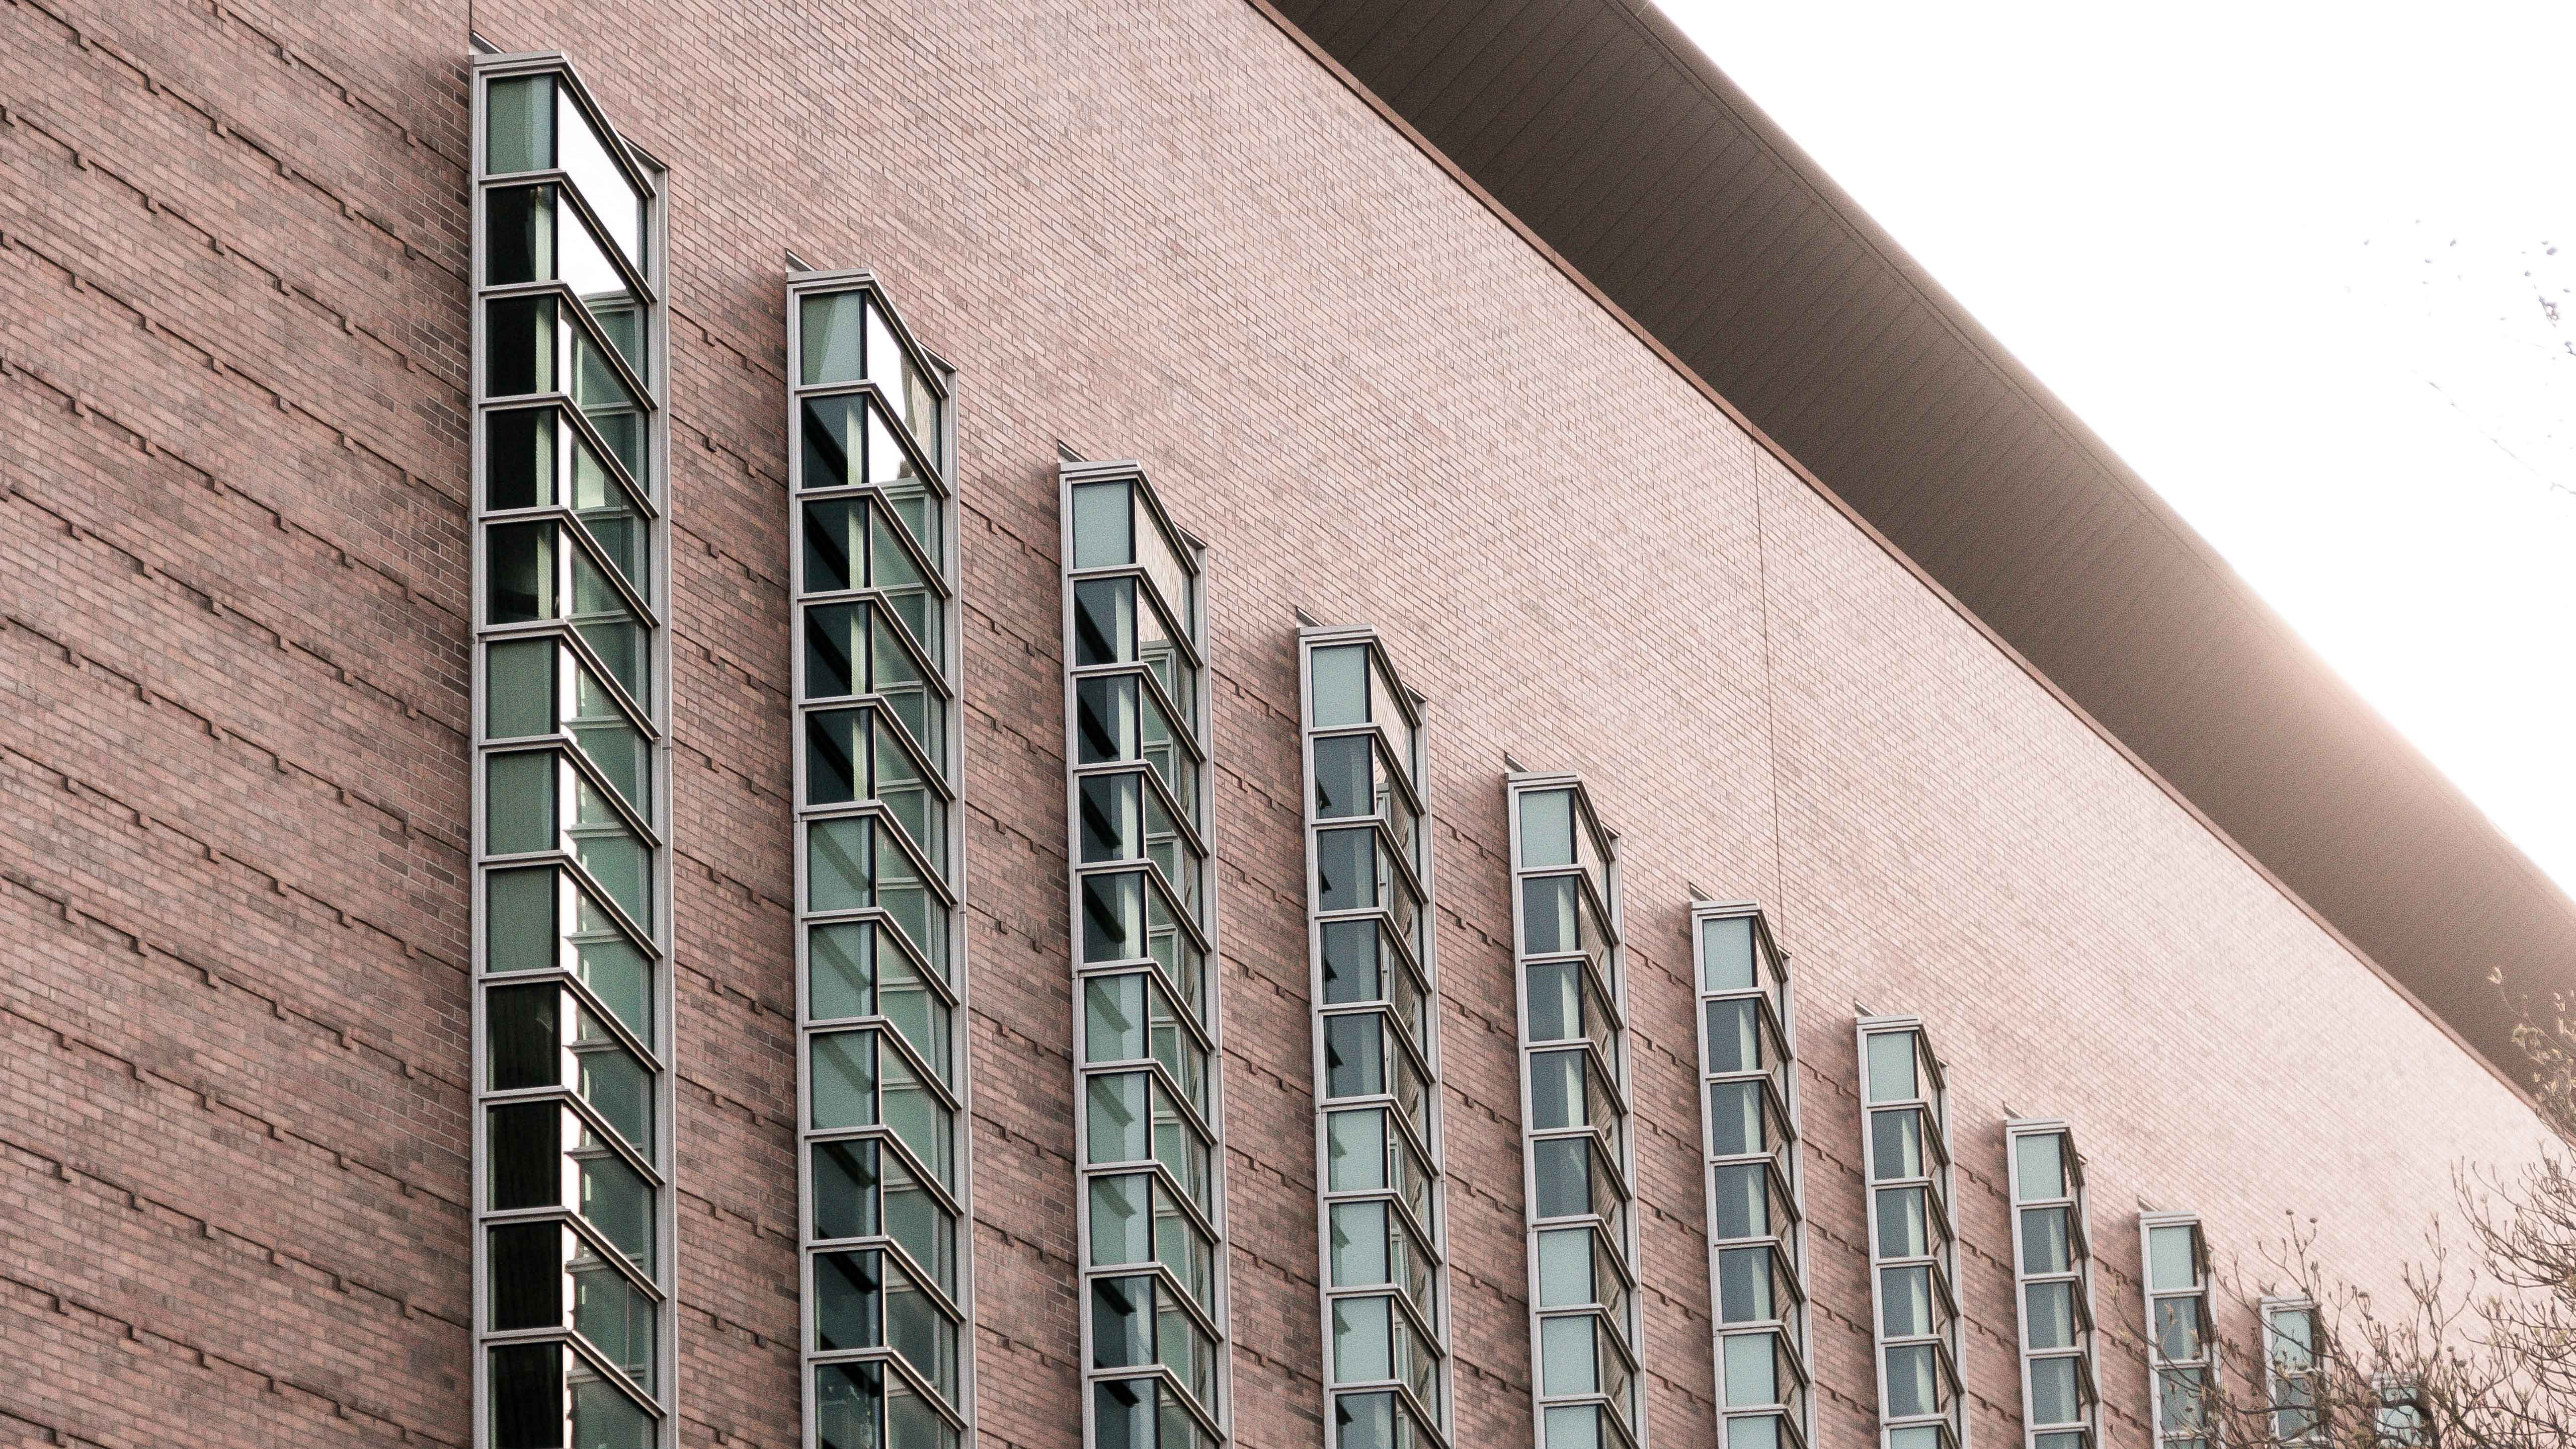 Tall barred windows on red brick building wall with clear sky